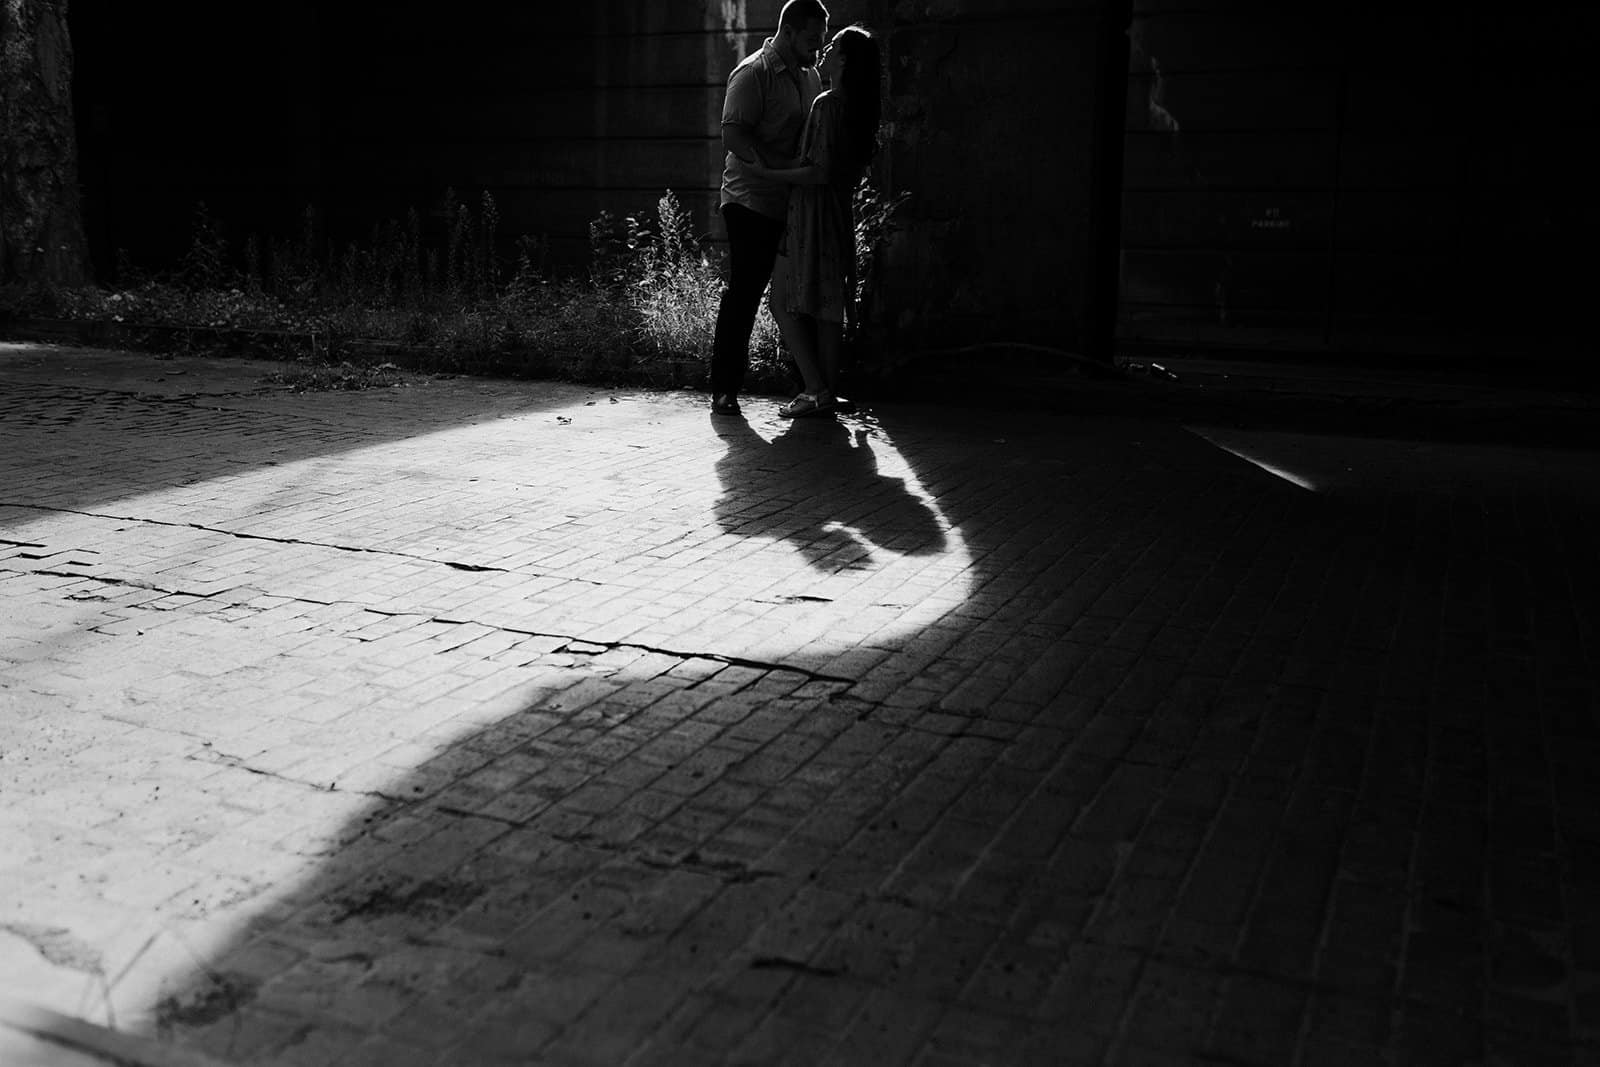 shadow of couple in distance embracing at underpass in Pittsburgh